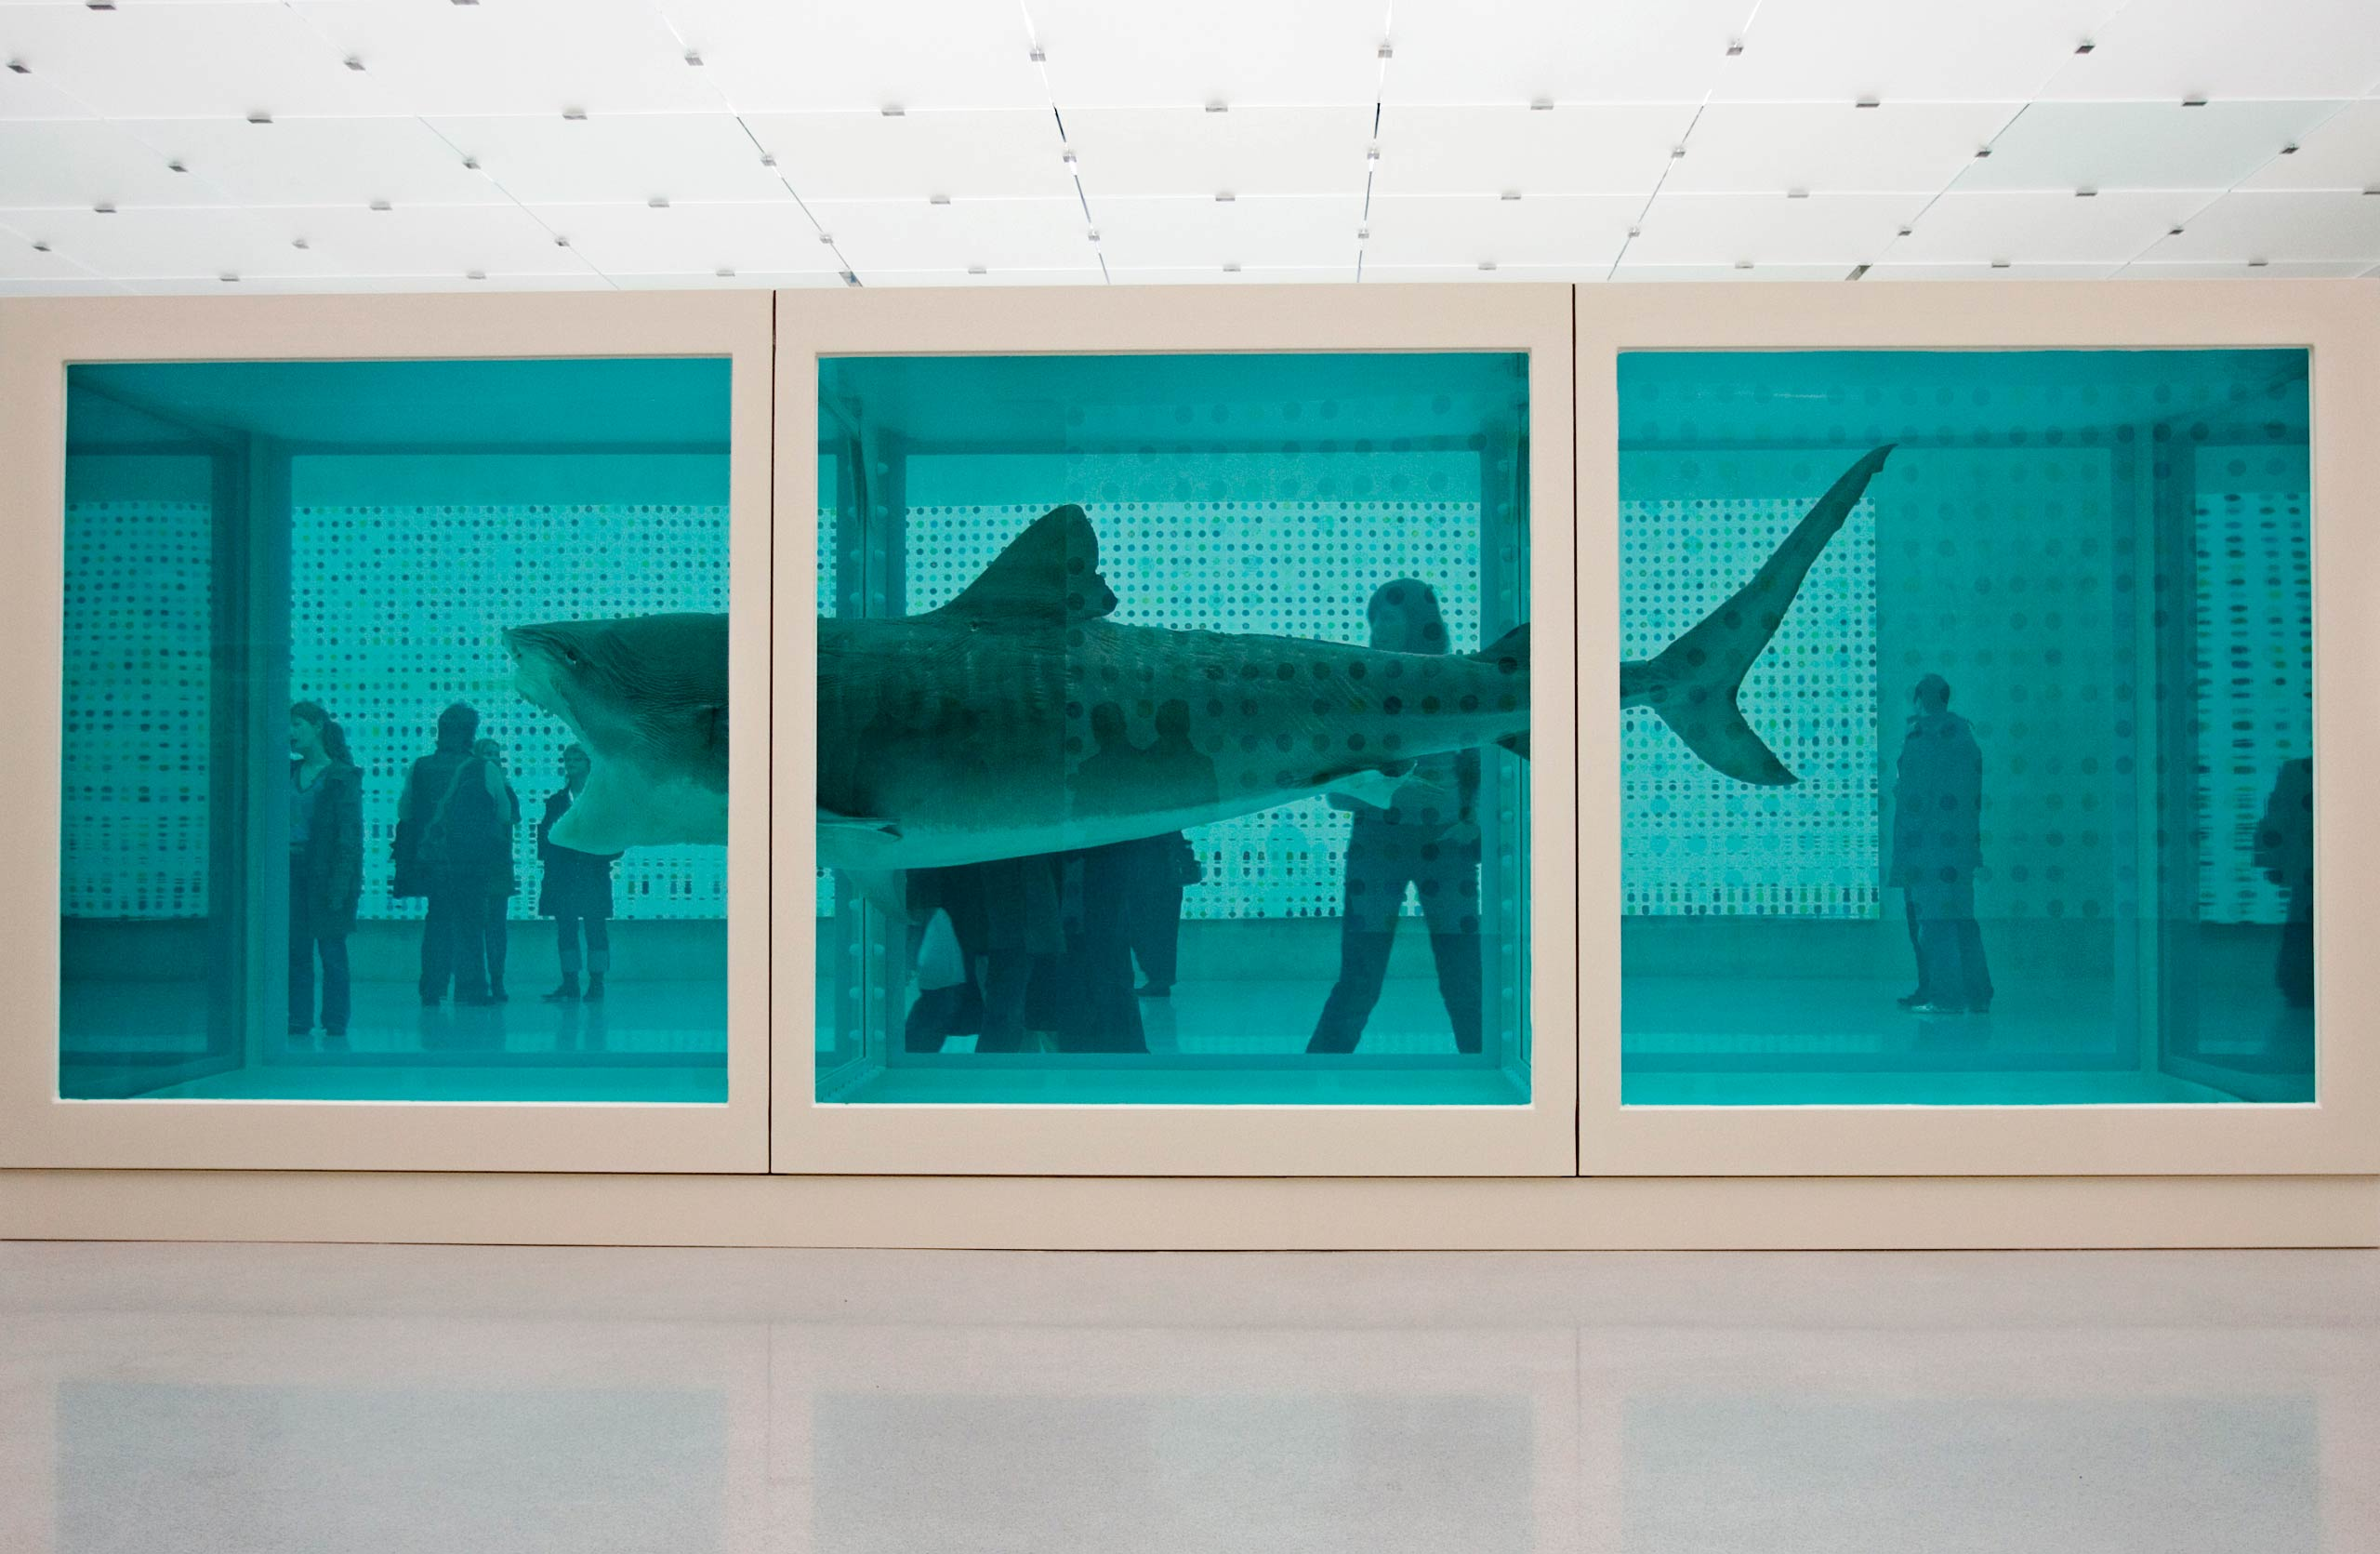 Perhaps Hirst's most famous work,  The Physical Impossibility of Death in the Mind of Someone Living  (1991) consists of a tiger shark preserved in formaldehyde.